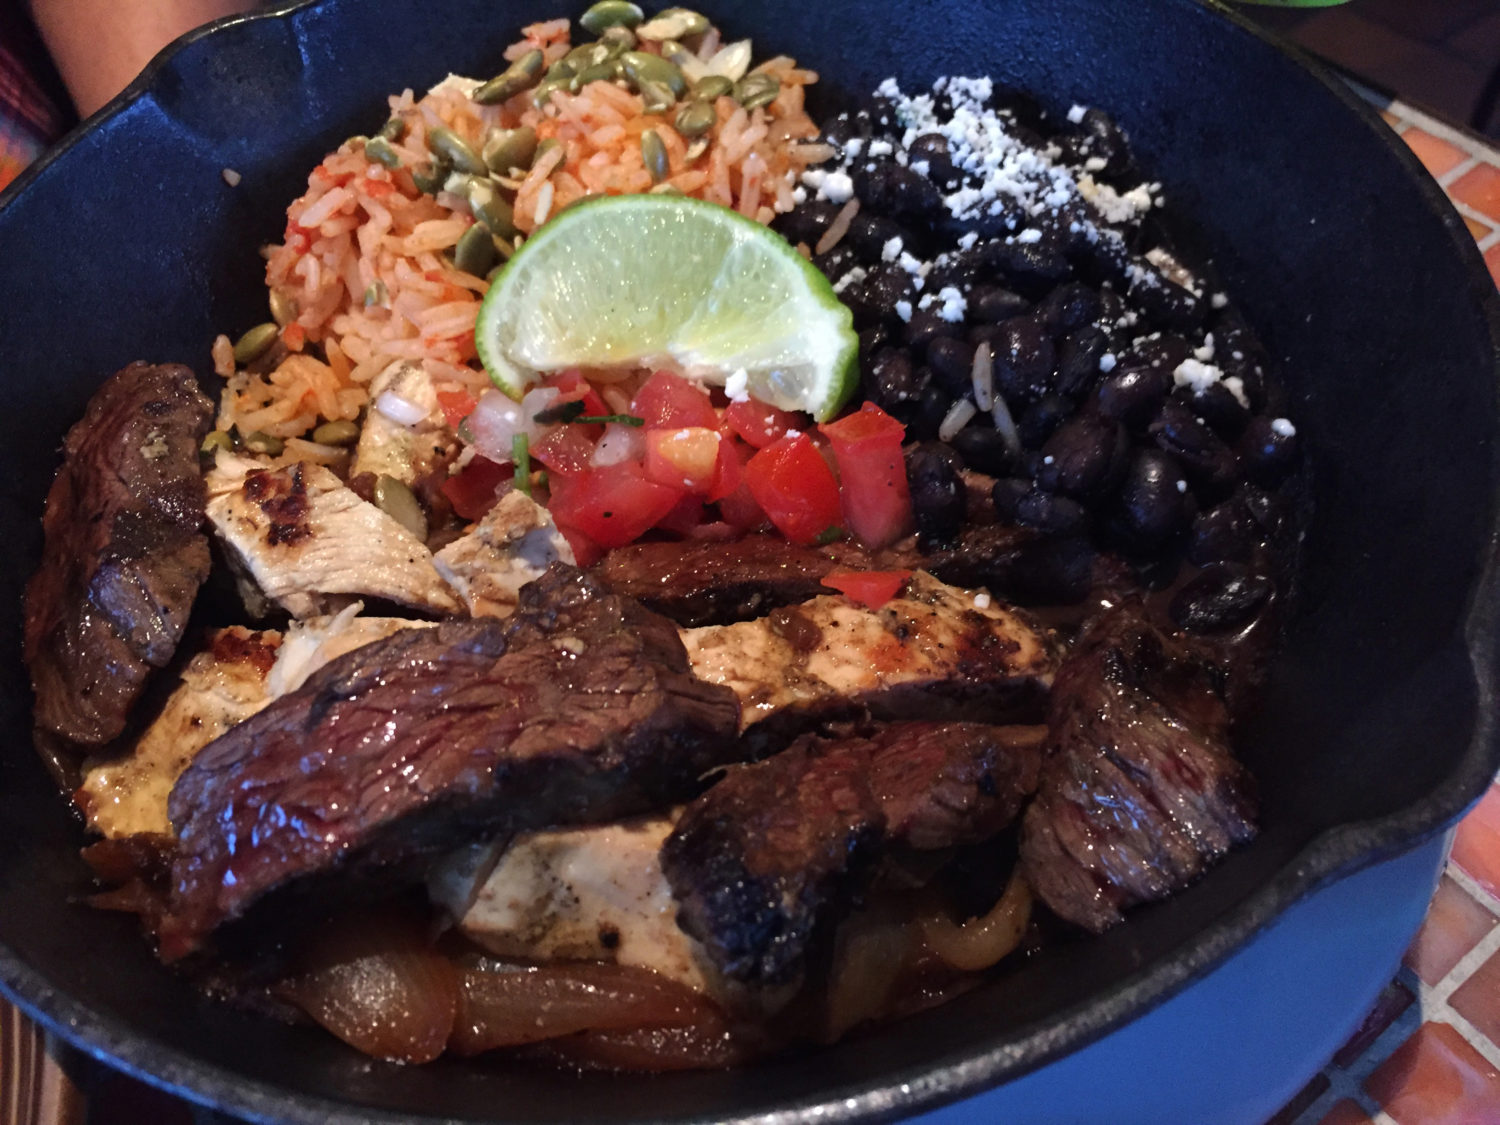 Cactus Restaurants in Seattle, Bellevue, and Kirkland